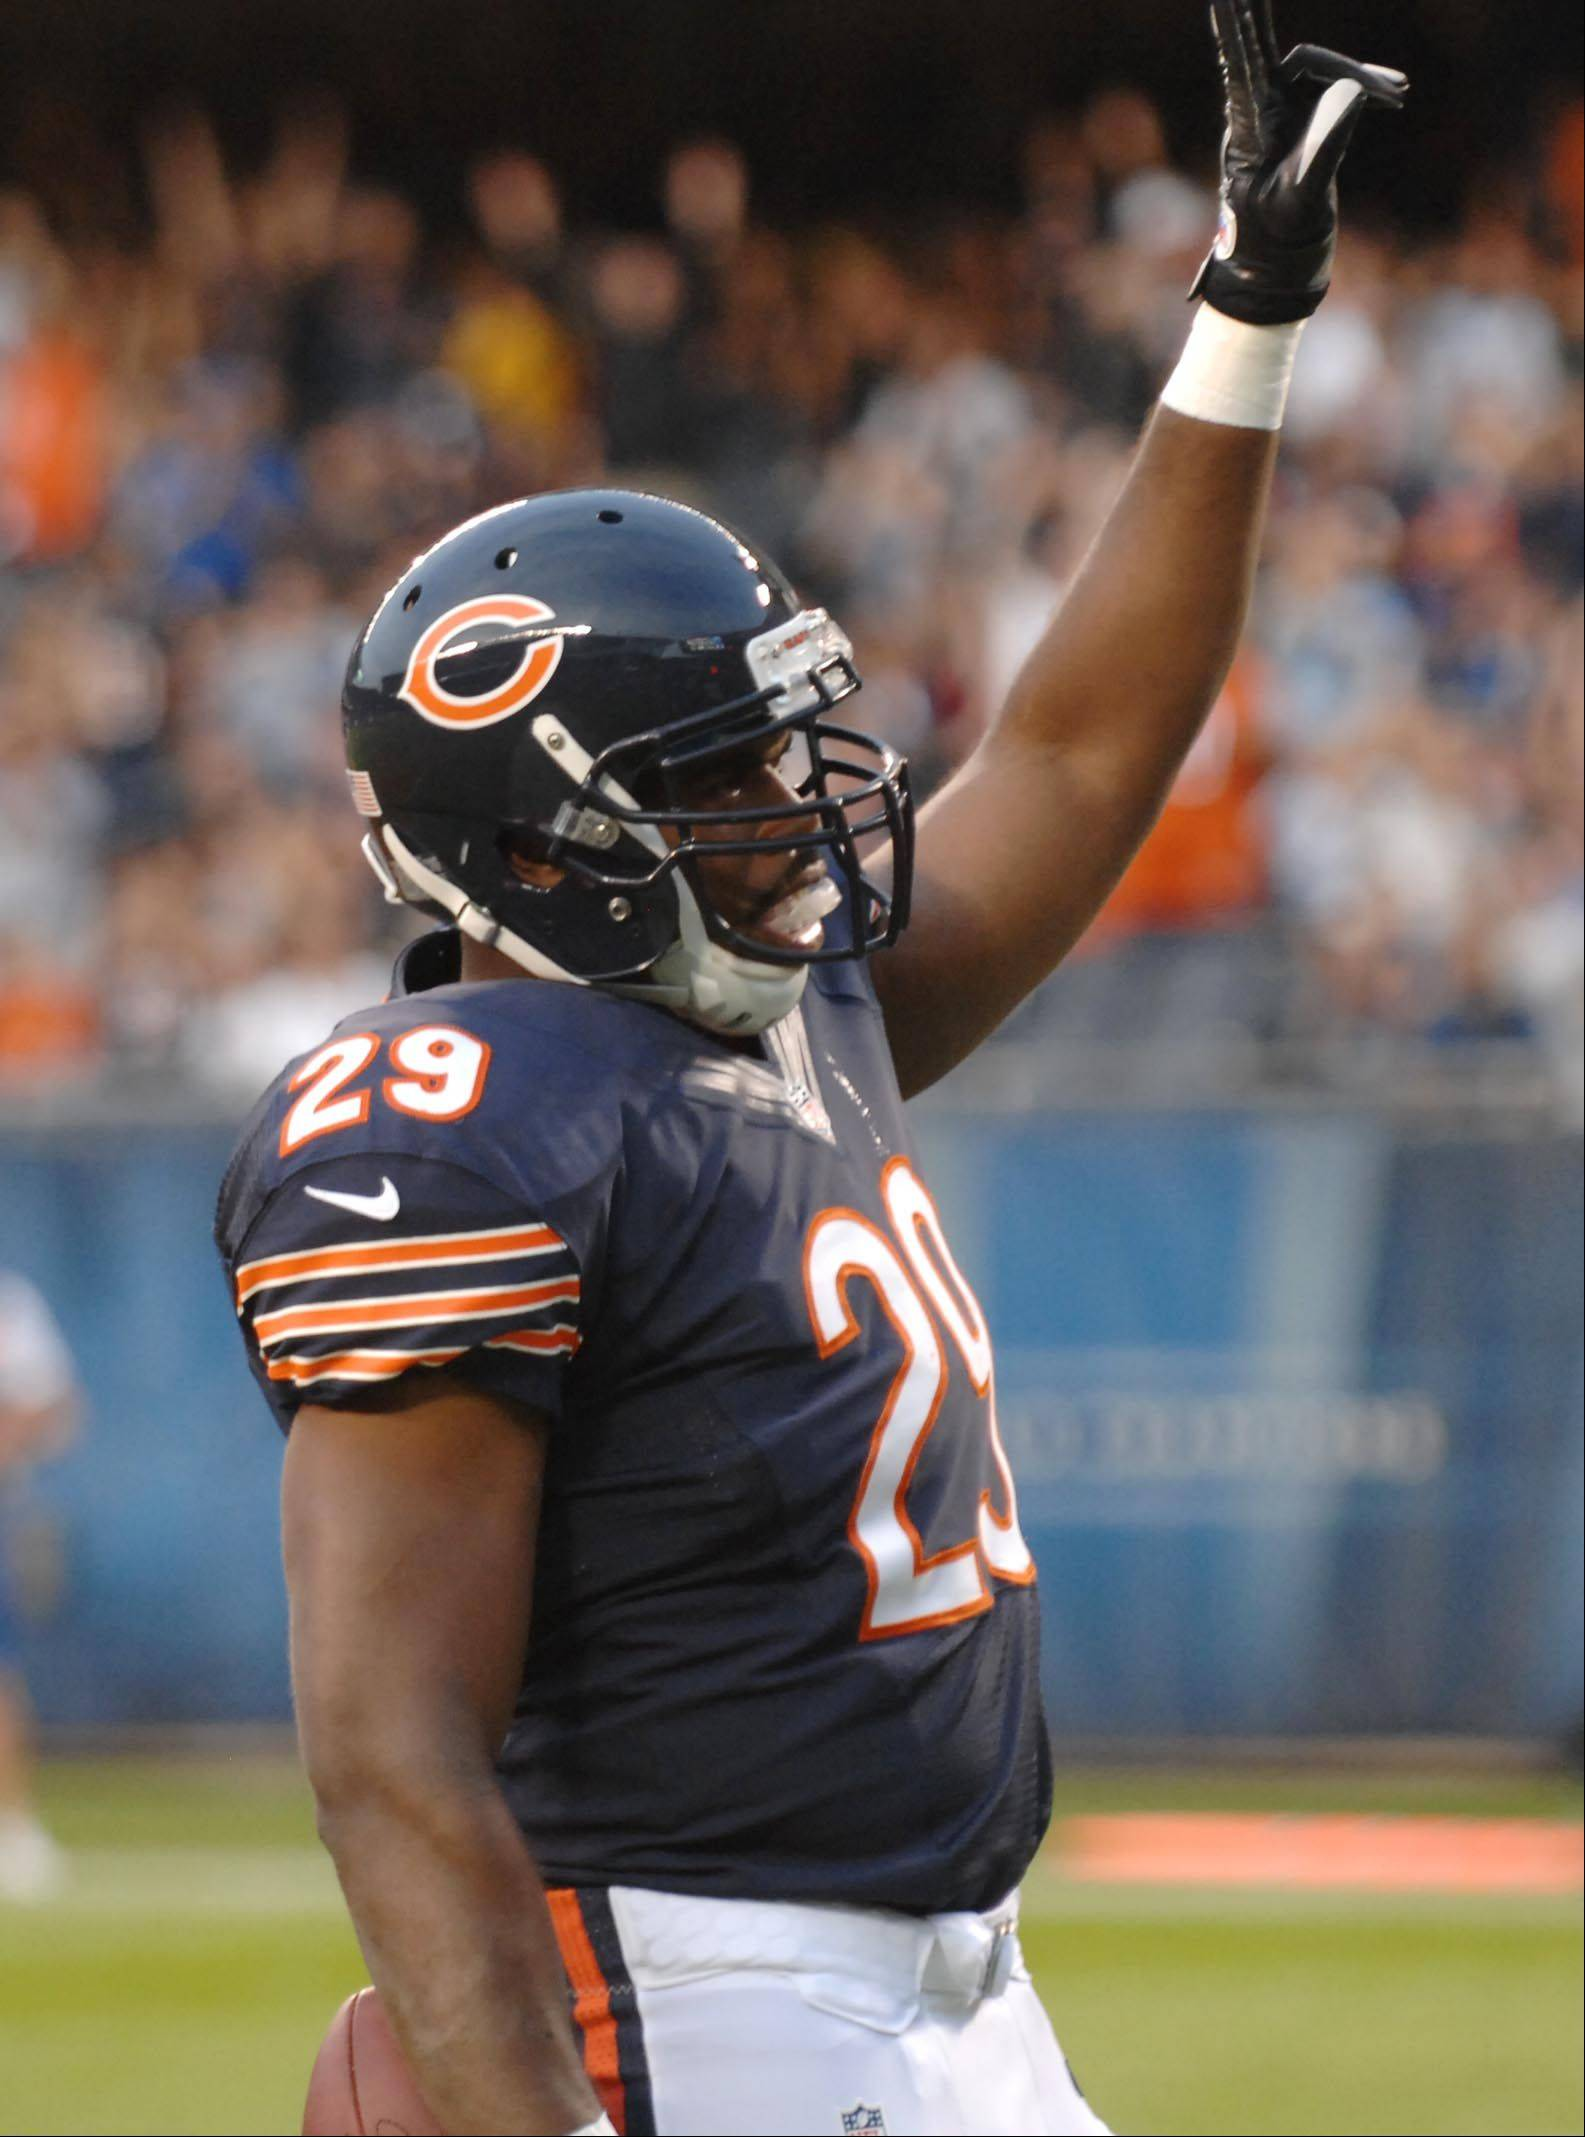 Chicago Bears running back Michael Bush signals to the crowd after his first touchdown Saturday against the Washington Redskins in the second preseason game at Soldier Field in Chicago.